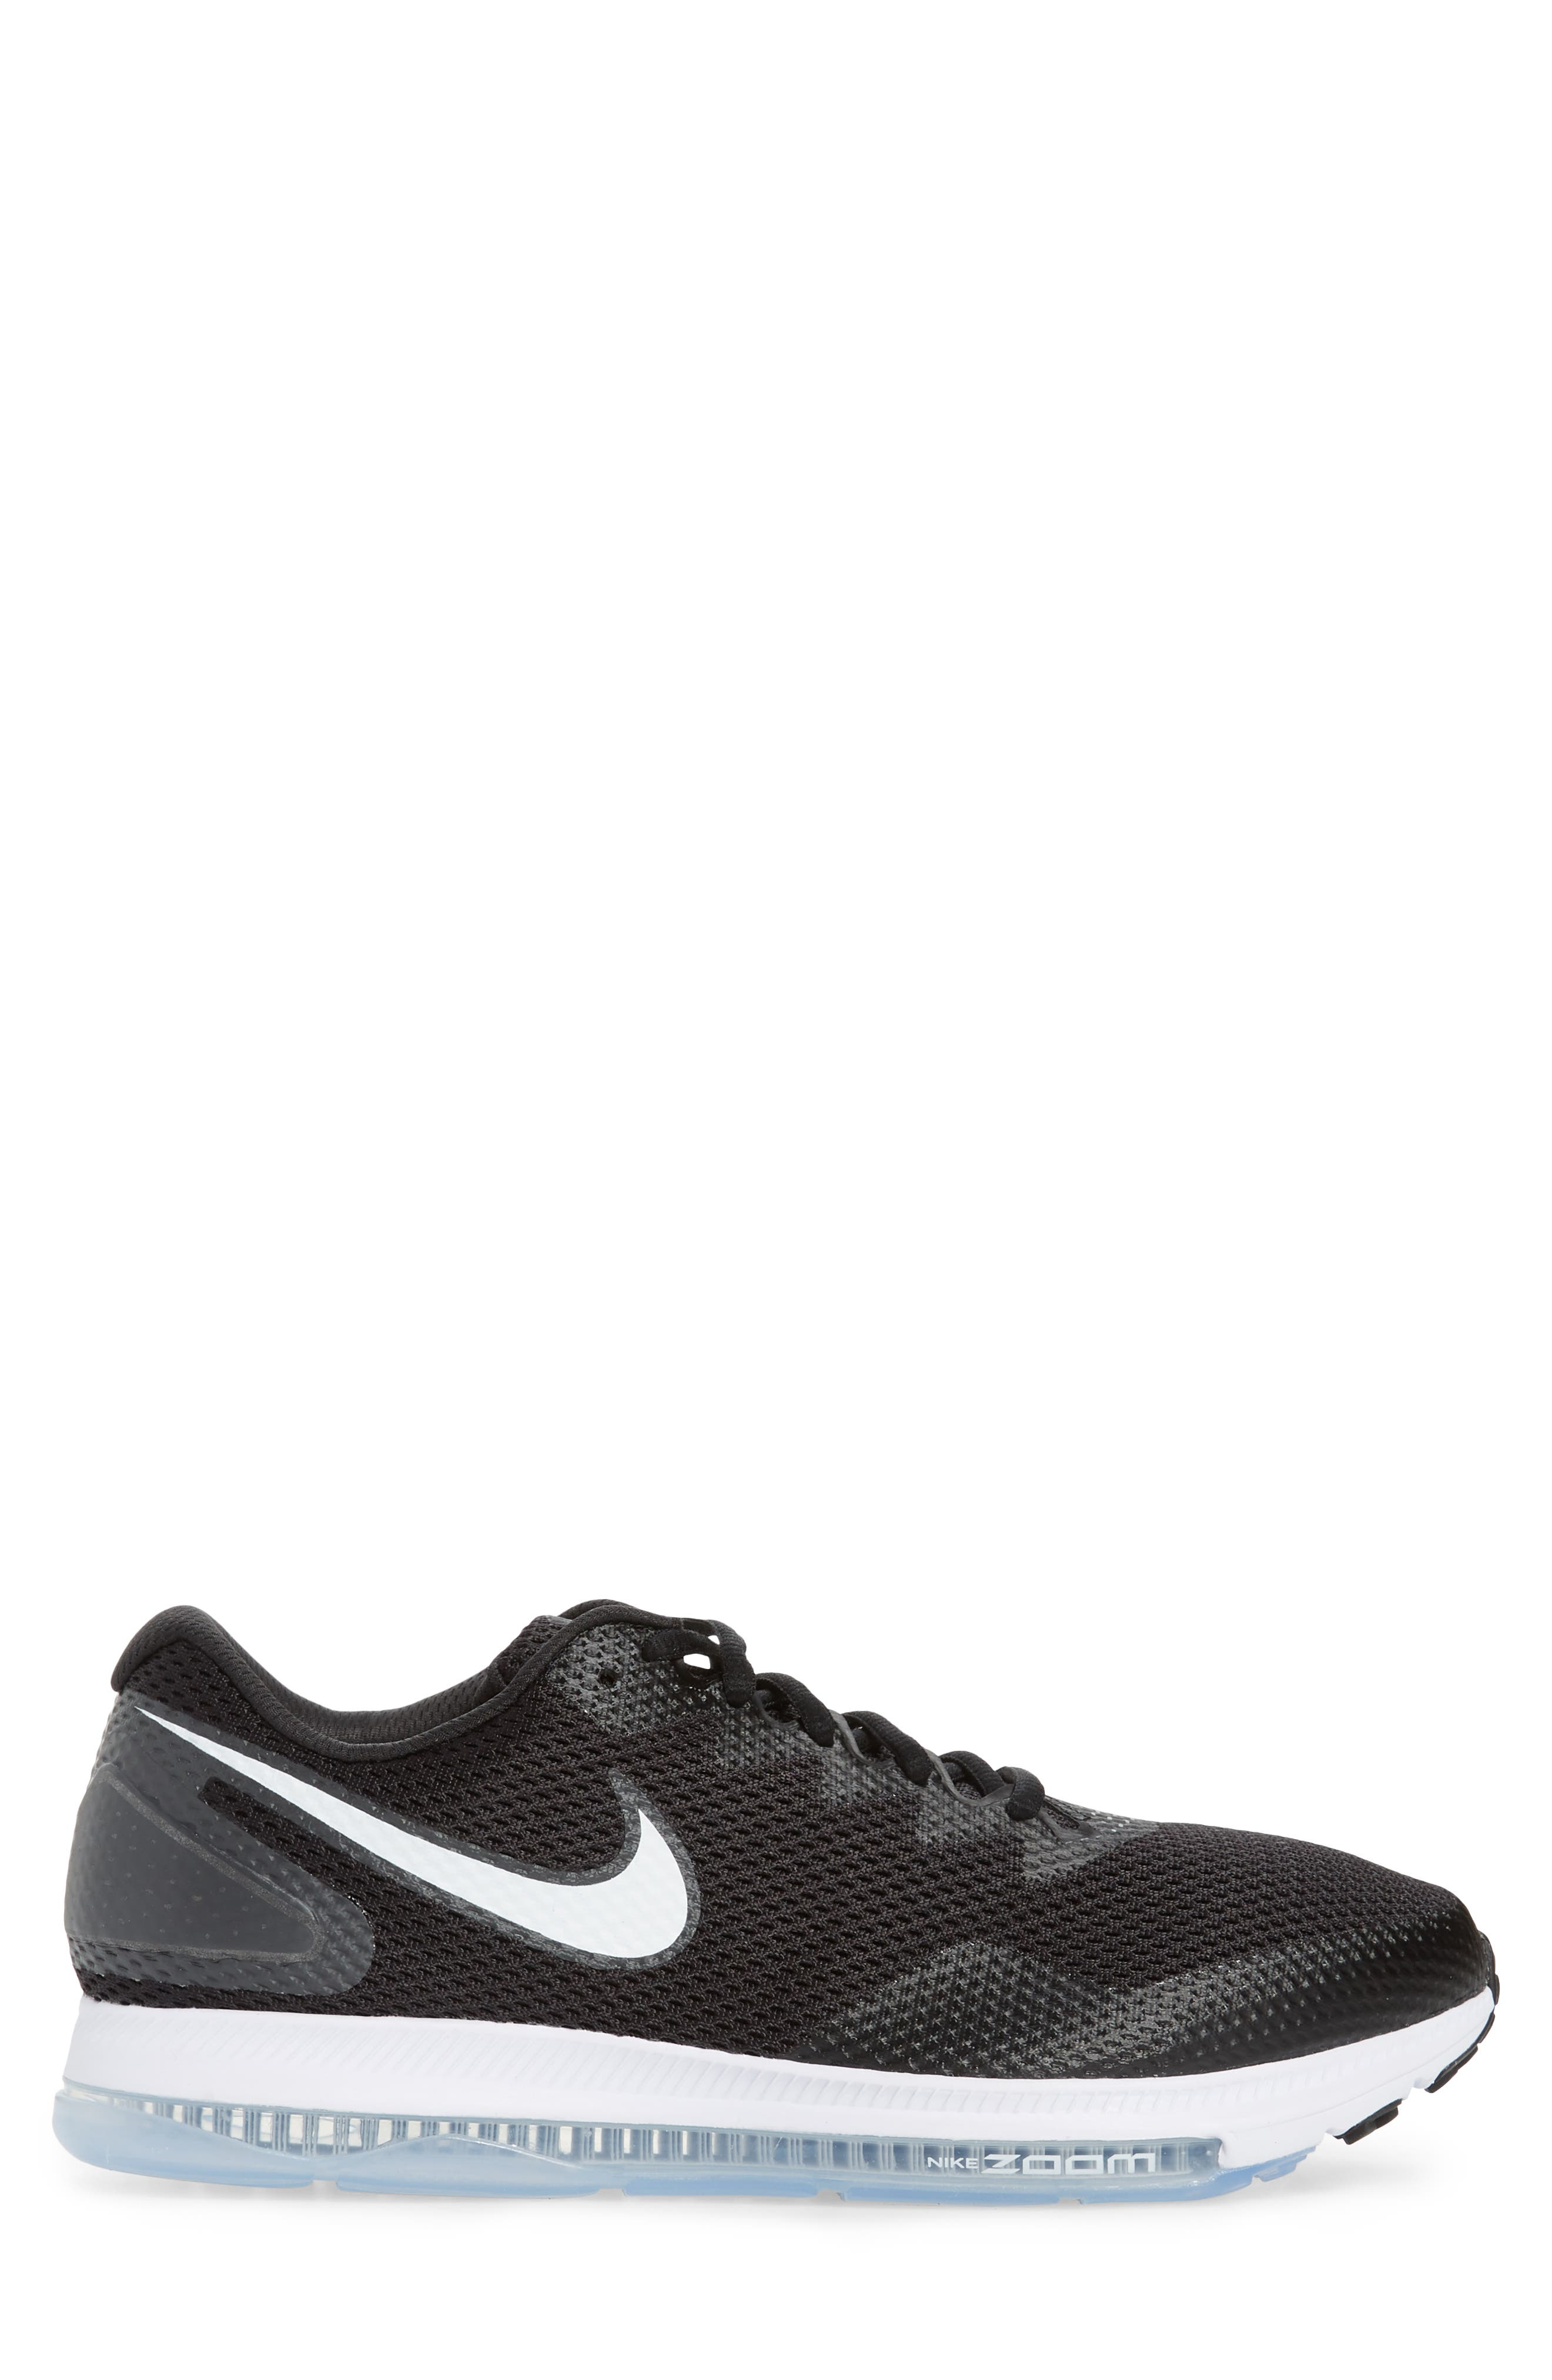 Zoom All Out Low 2 Running Shoe,                             Alternate thumbnail 3, color,                             Black/ White/ Anthracite